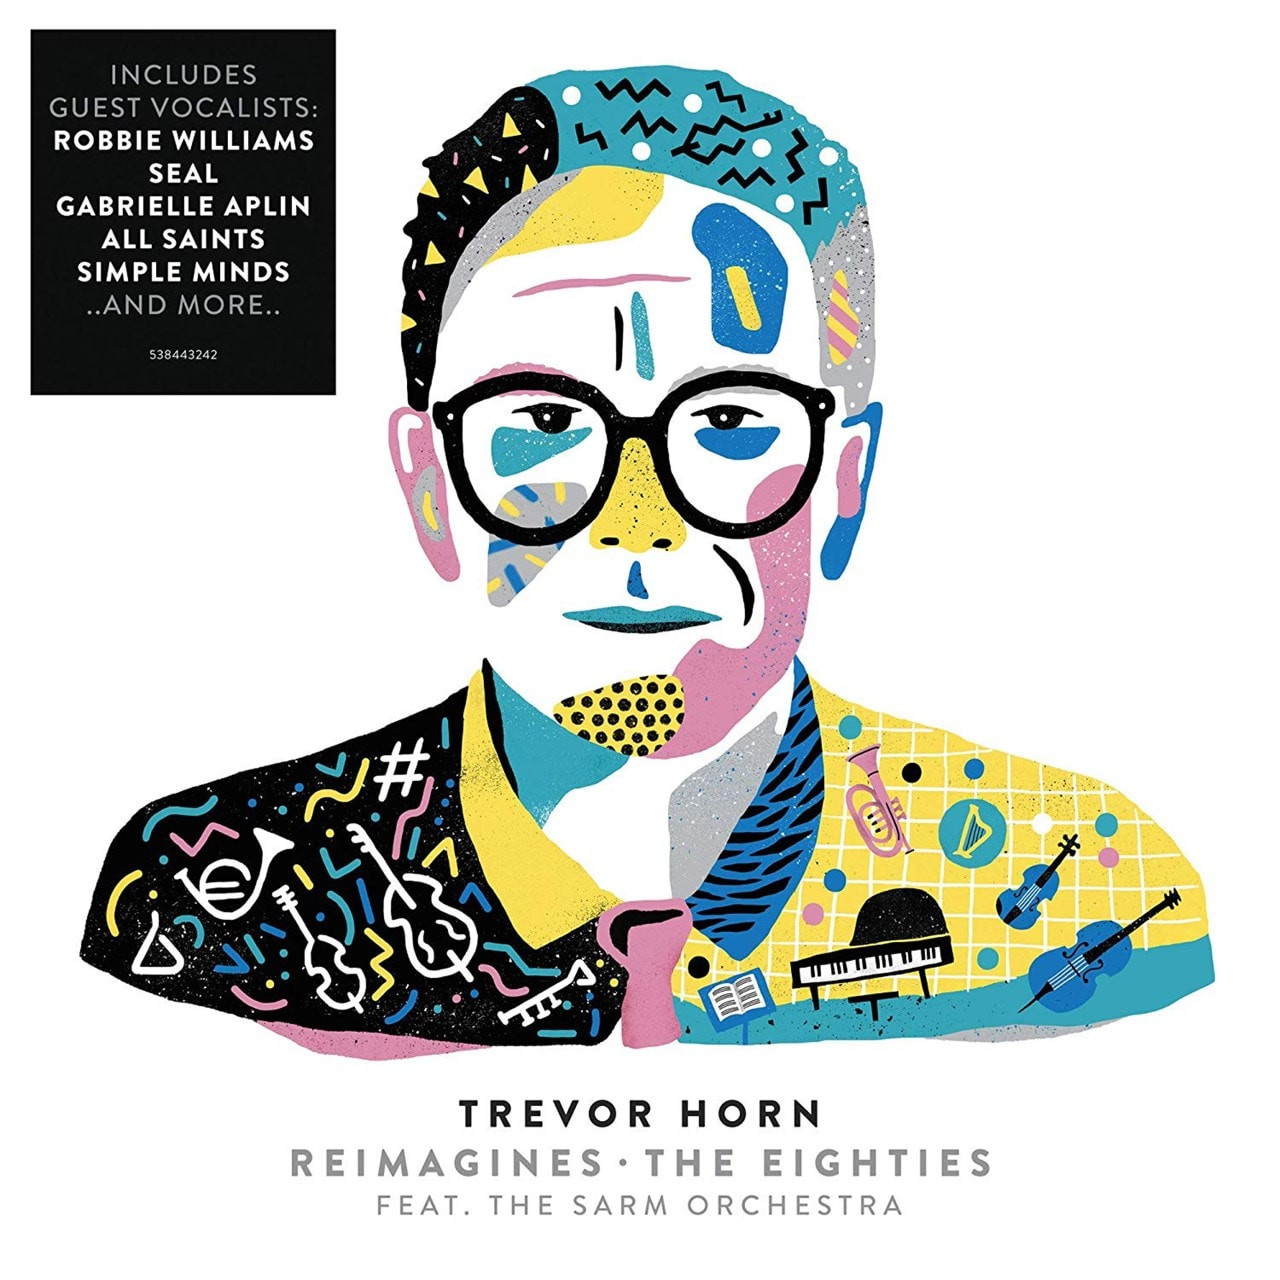 Trevor Horn Reimagines the Eighties (Feat. The Sarm Orchestra) - 1